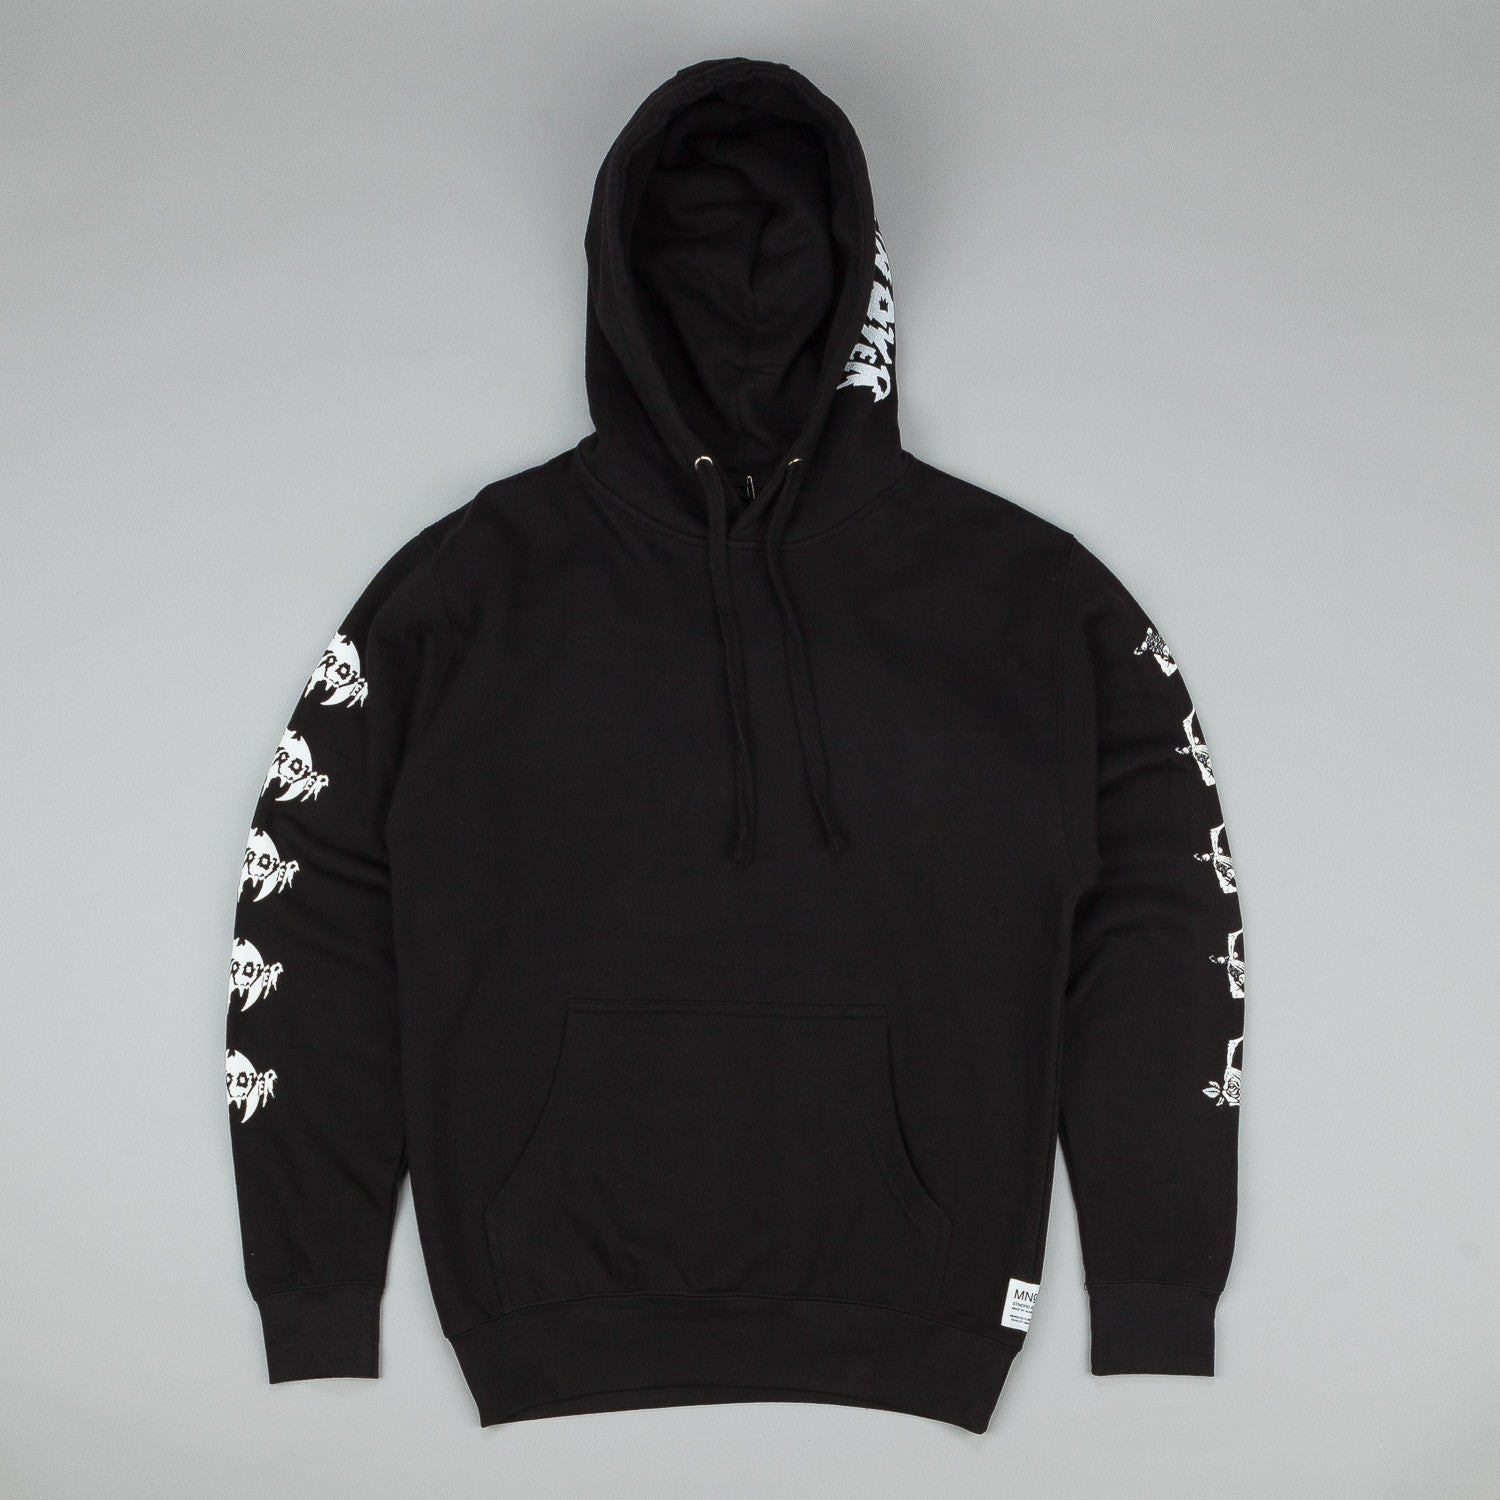 MN07 Dead Plant Hooded Sweatshirt - Black